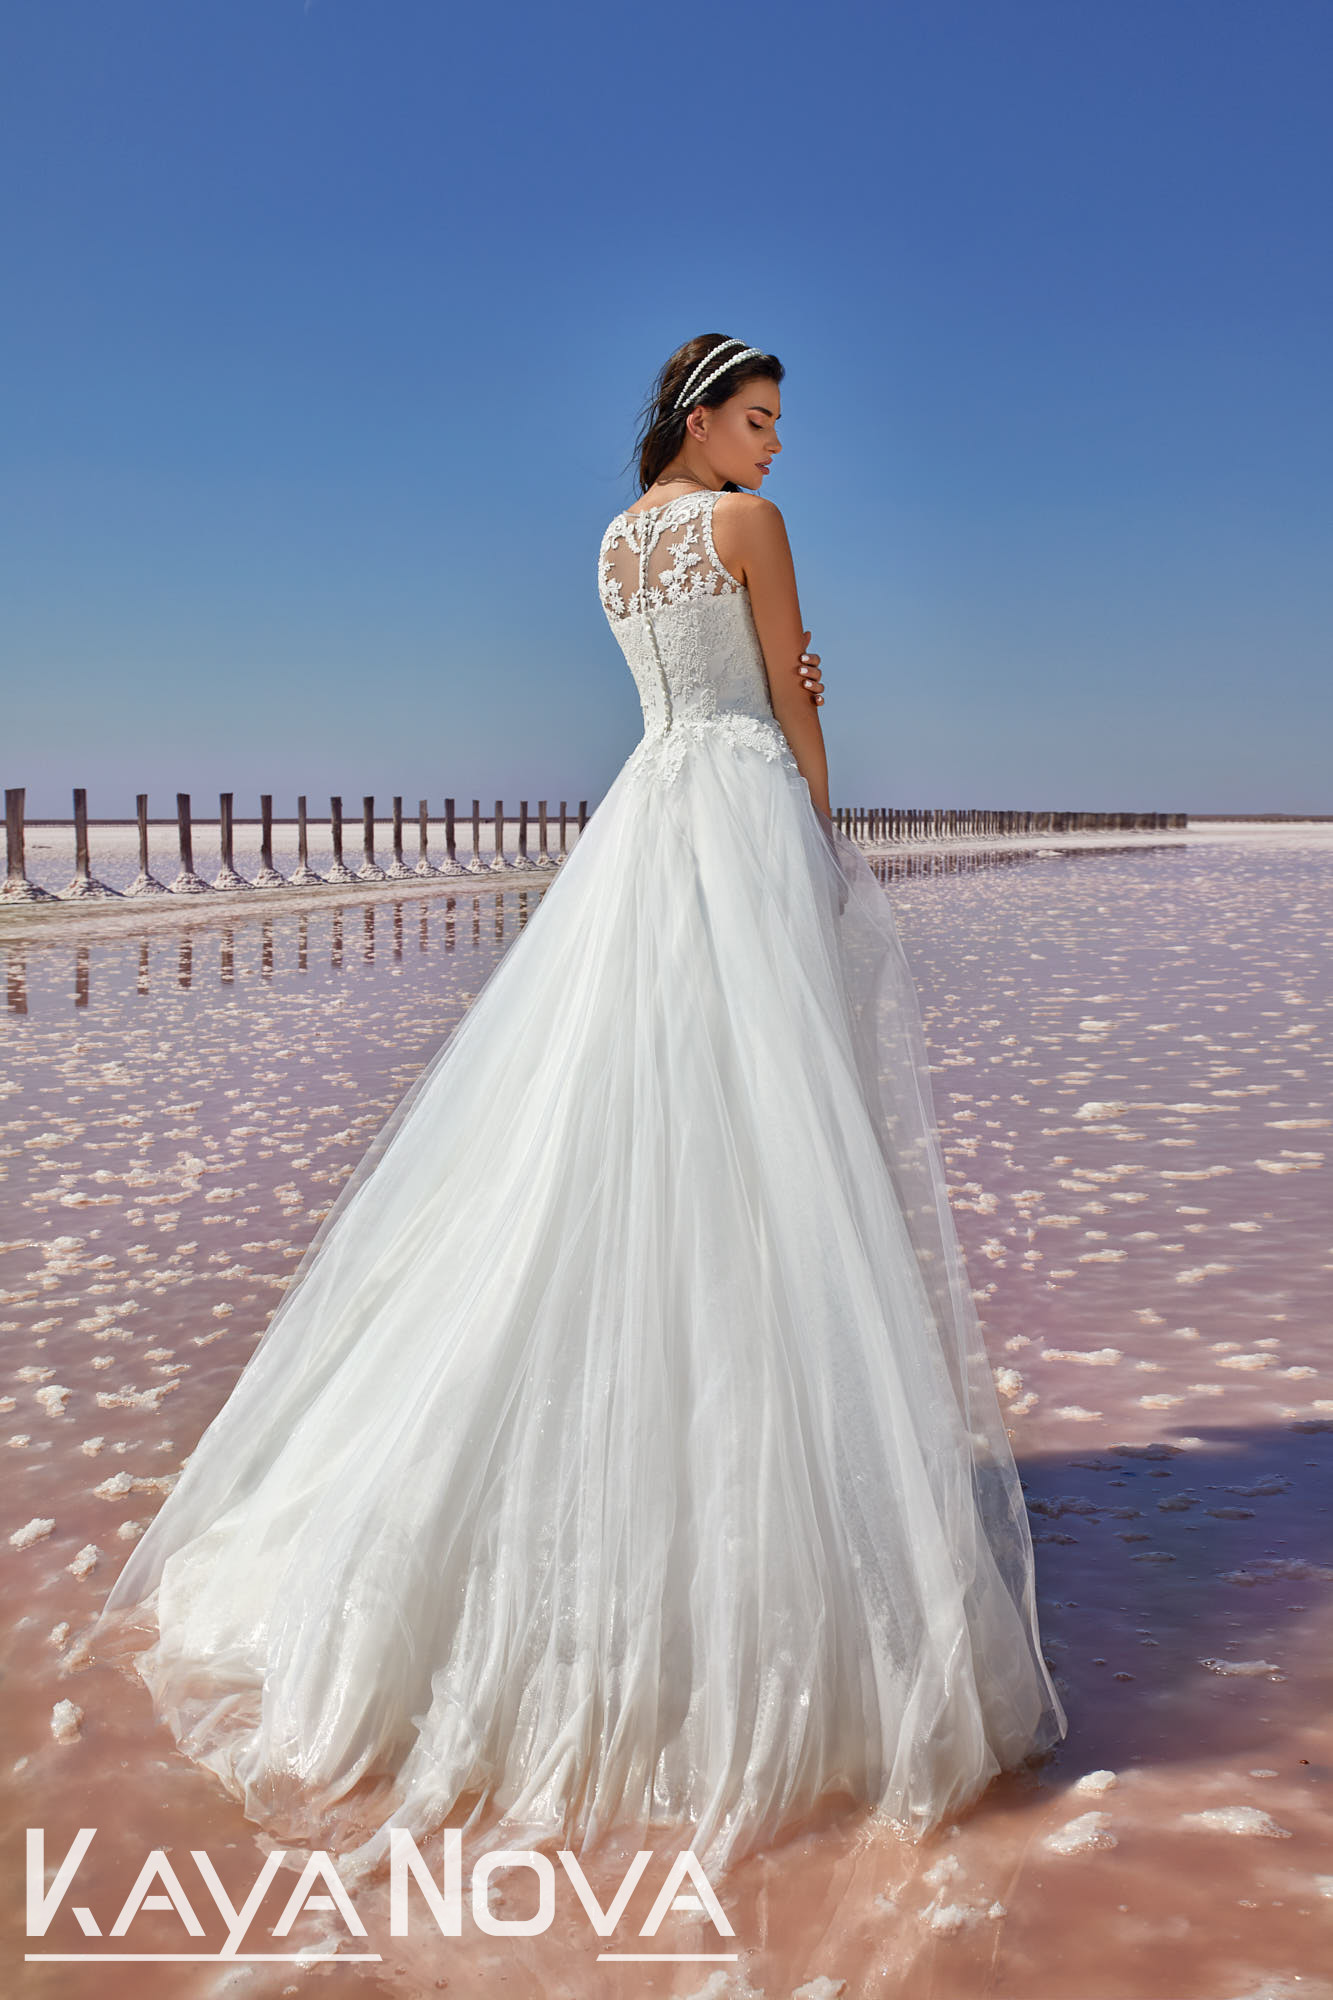 https://kayawedding.com/images/stories/virtuemart/product/344A2029.jpg